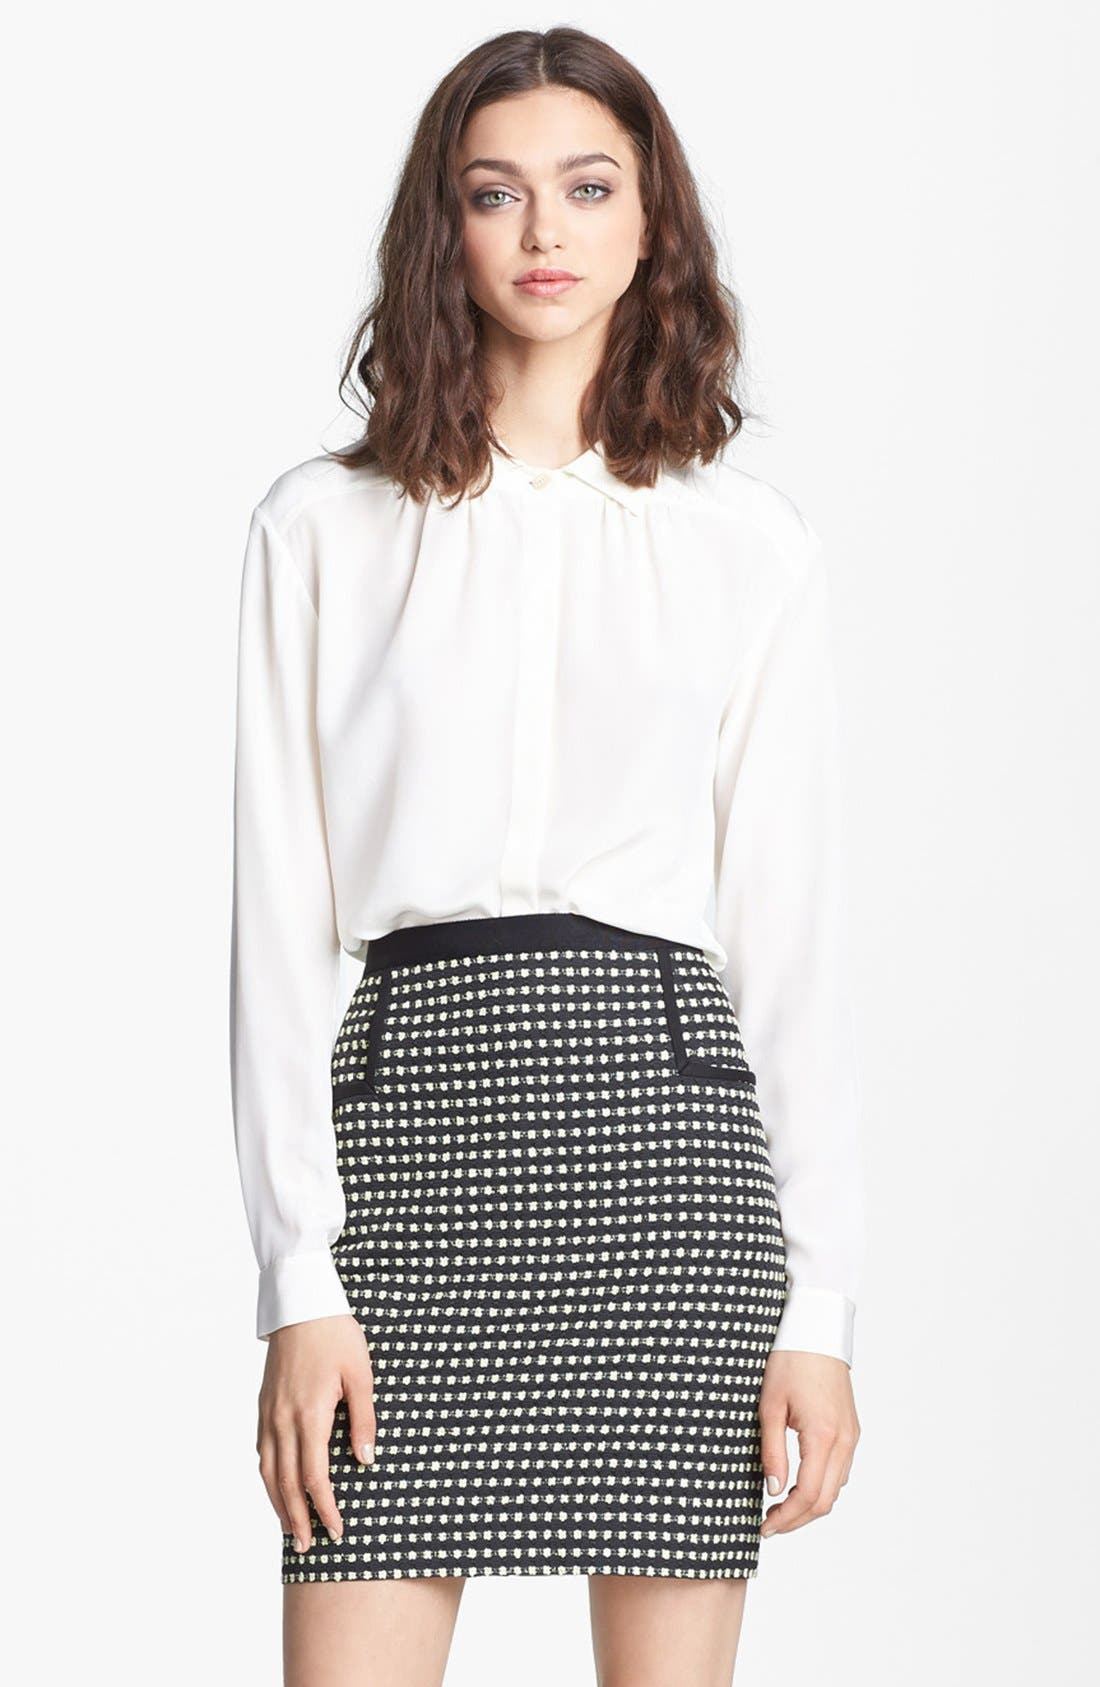 Alternate Image 1 Selected - Miss Wu Crêpe de Chine Blouse (Nordstrom Exclusive)